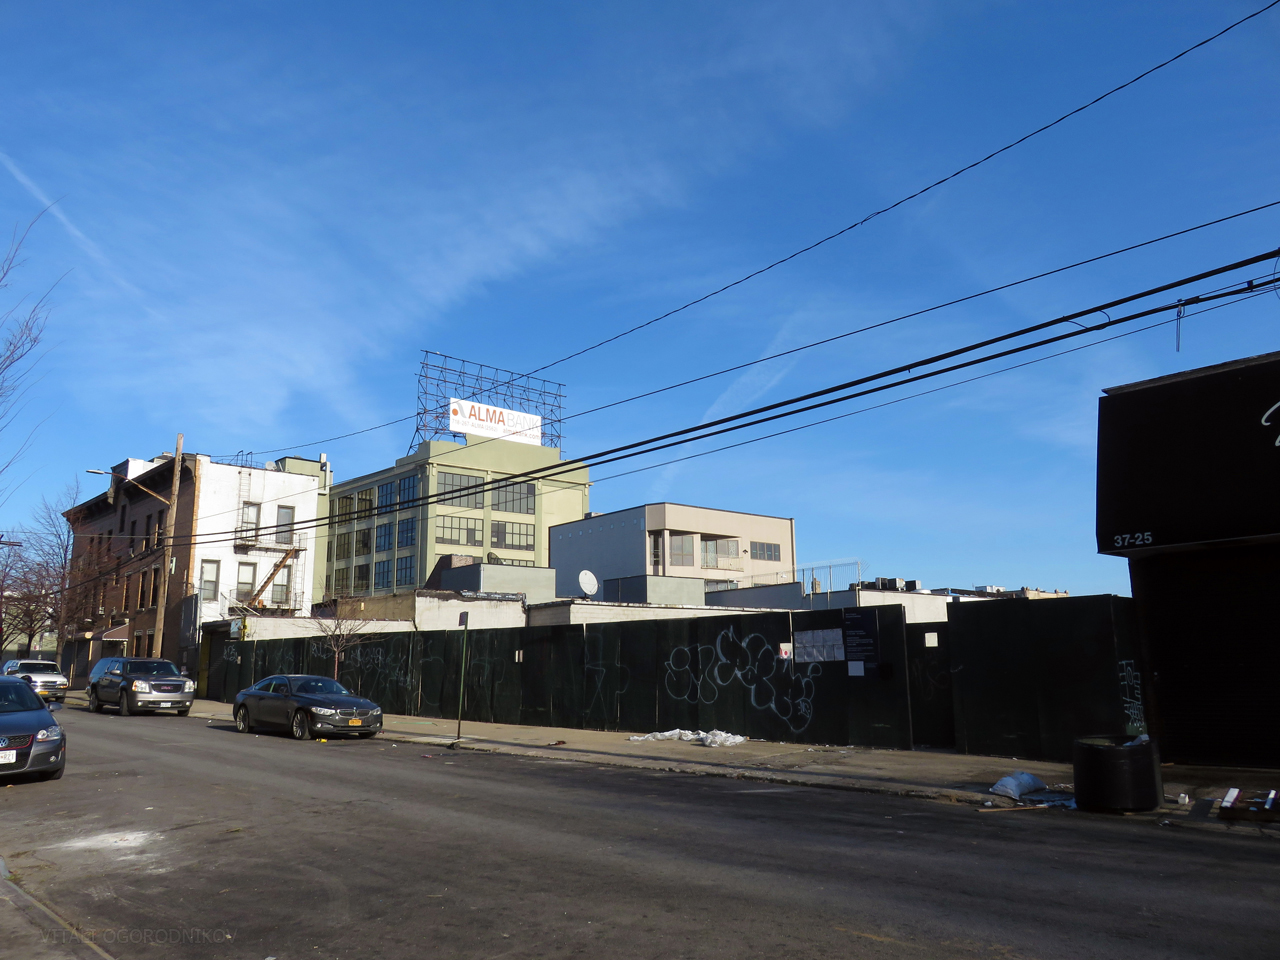 West end of the site, 32nd Street.